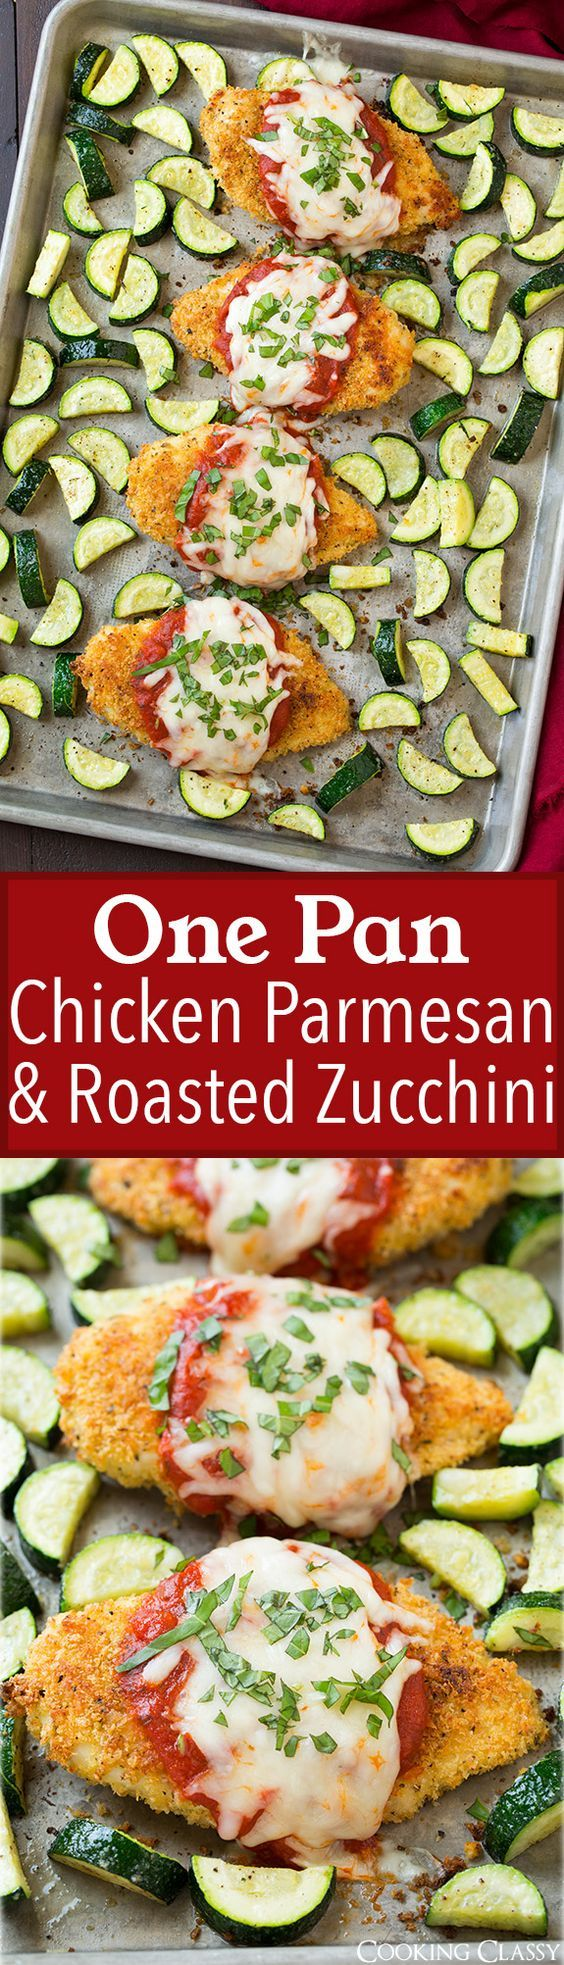 One Pan Chicken Parmesan and Roasted Zucchini - try this with oat or almond flour to make it fix-approved - or whole wheat bread crumbs